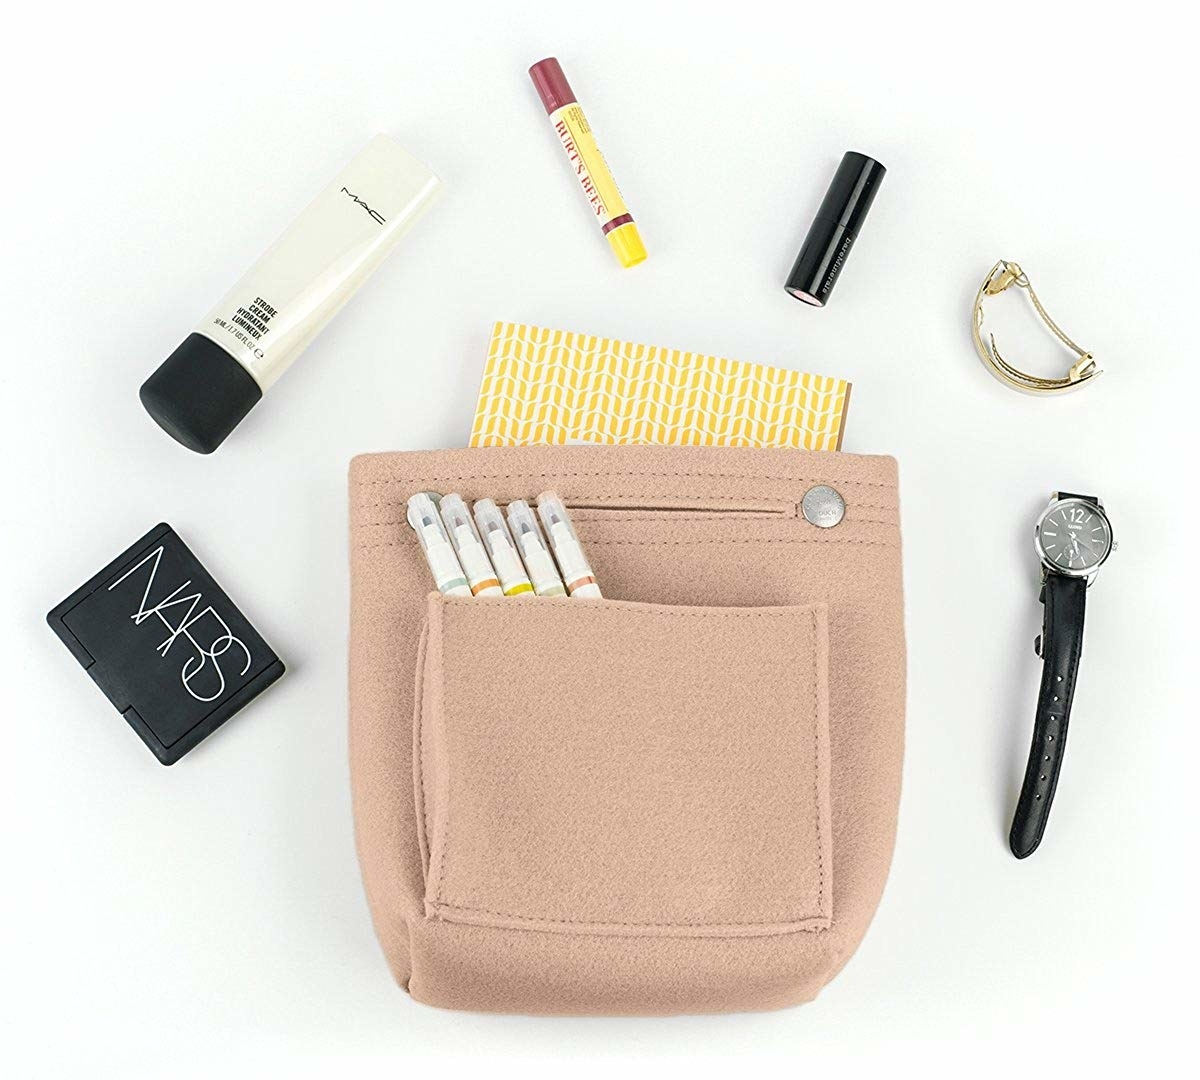 A felt purse organizer surrounded by an assortment of pens, makeup, jewelry, and a small notebook that can fit inside